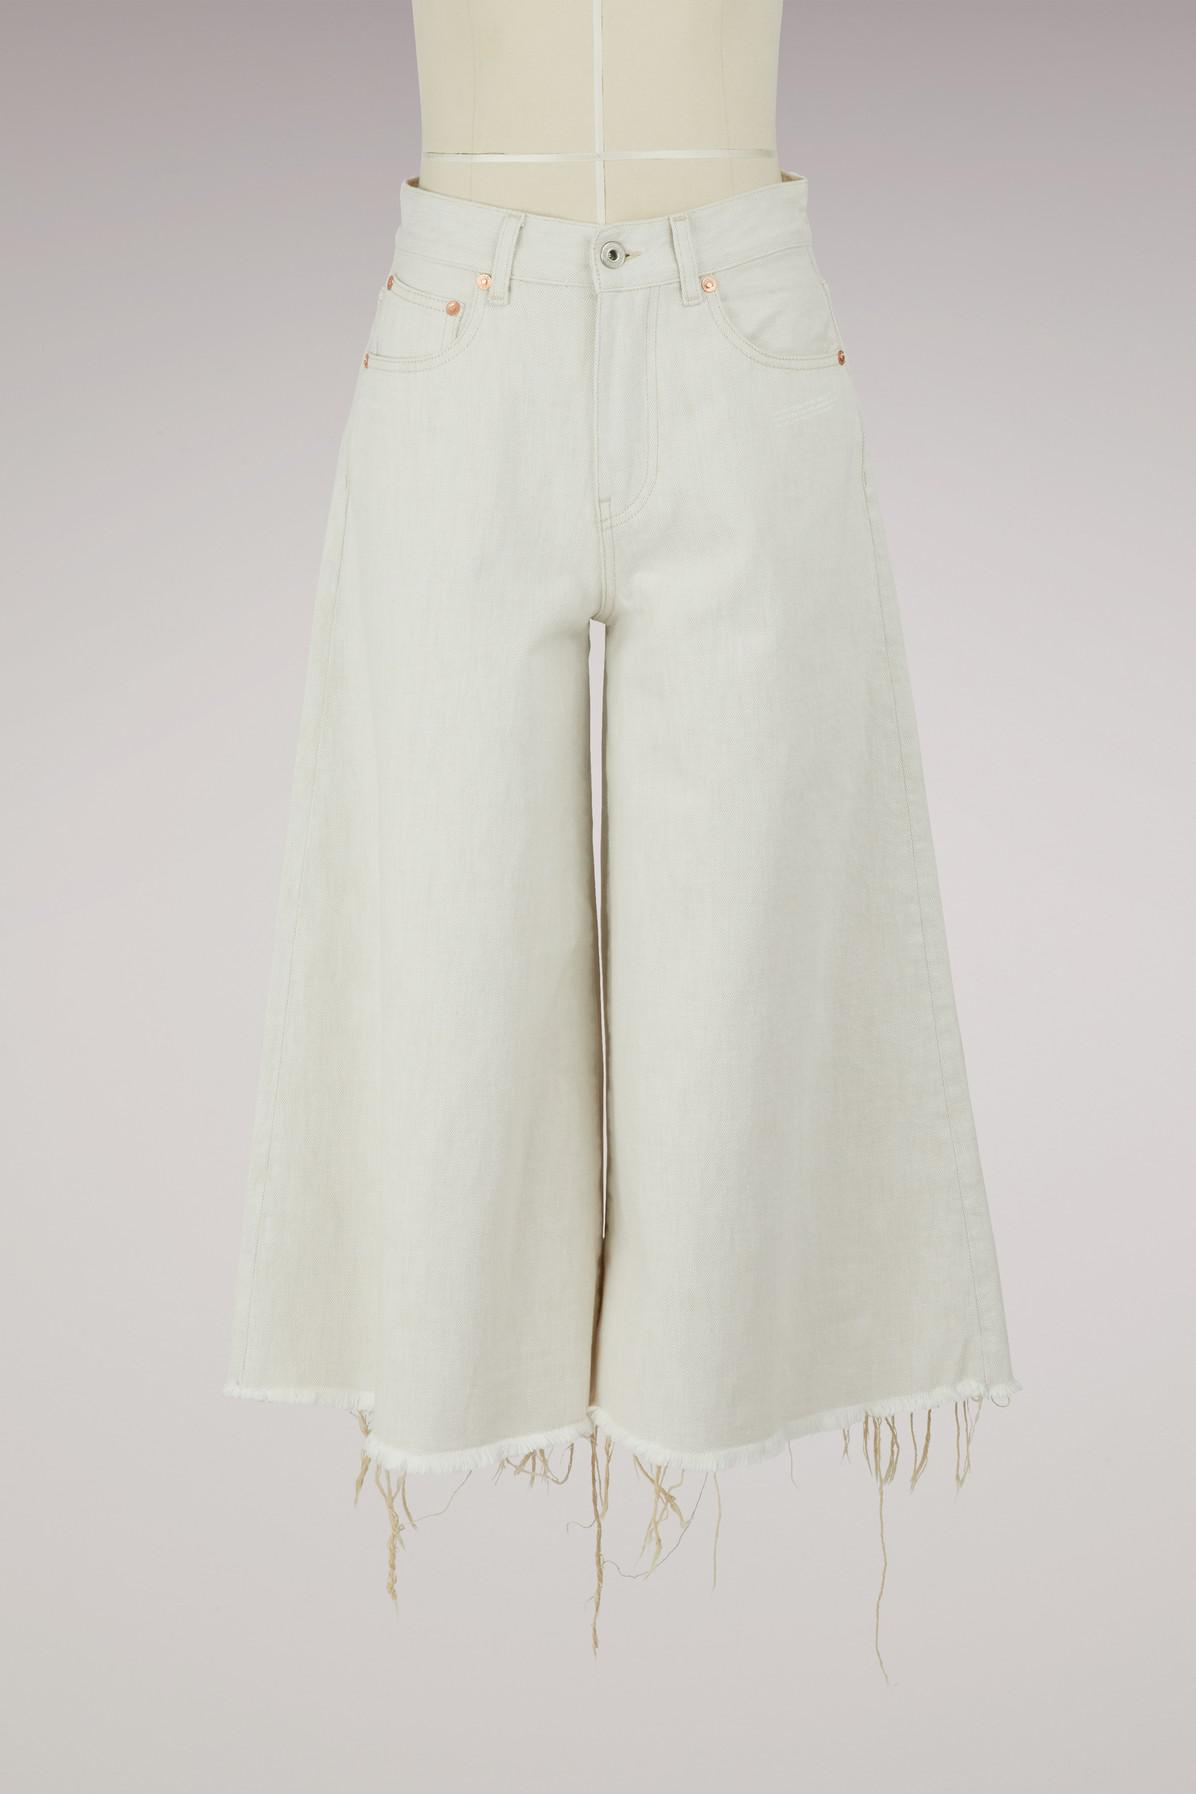 lyst off white c o virgil abloh denim culottes in white. Black Bedroom Furniture Sets. Home Design Ideas